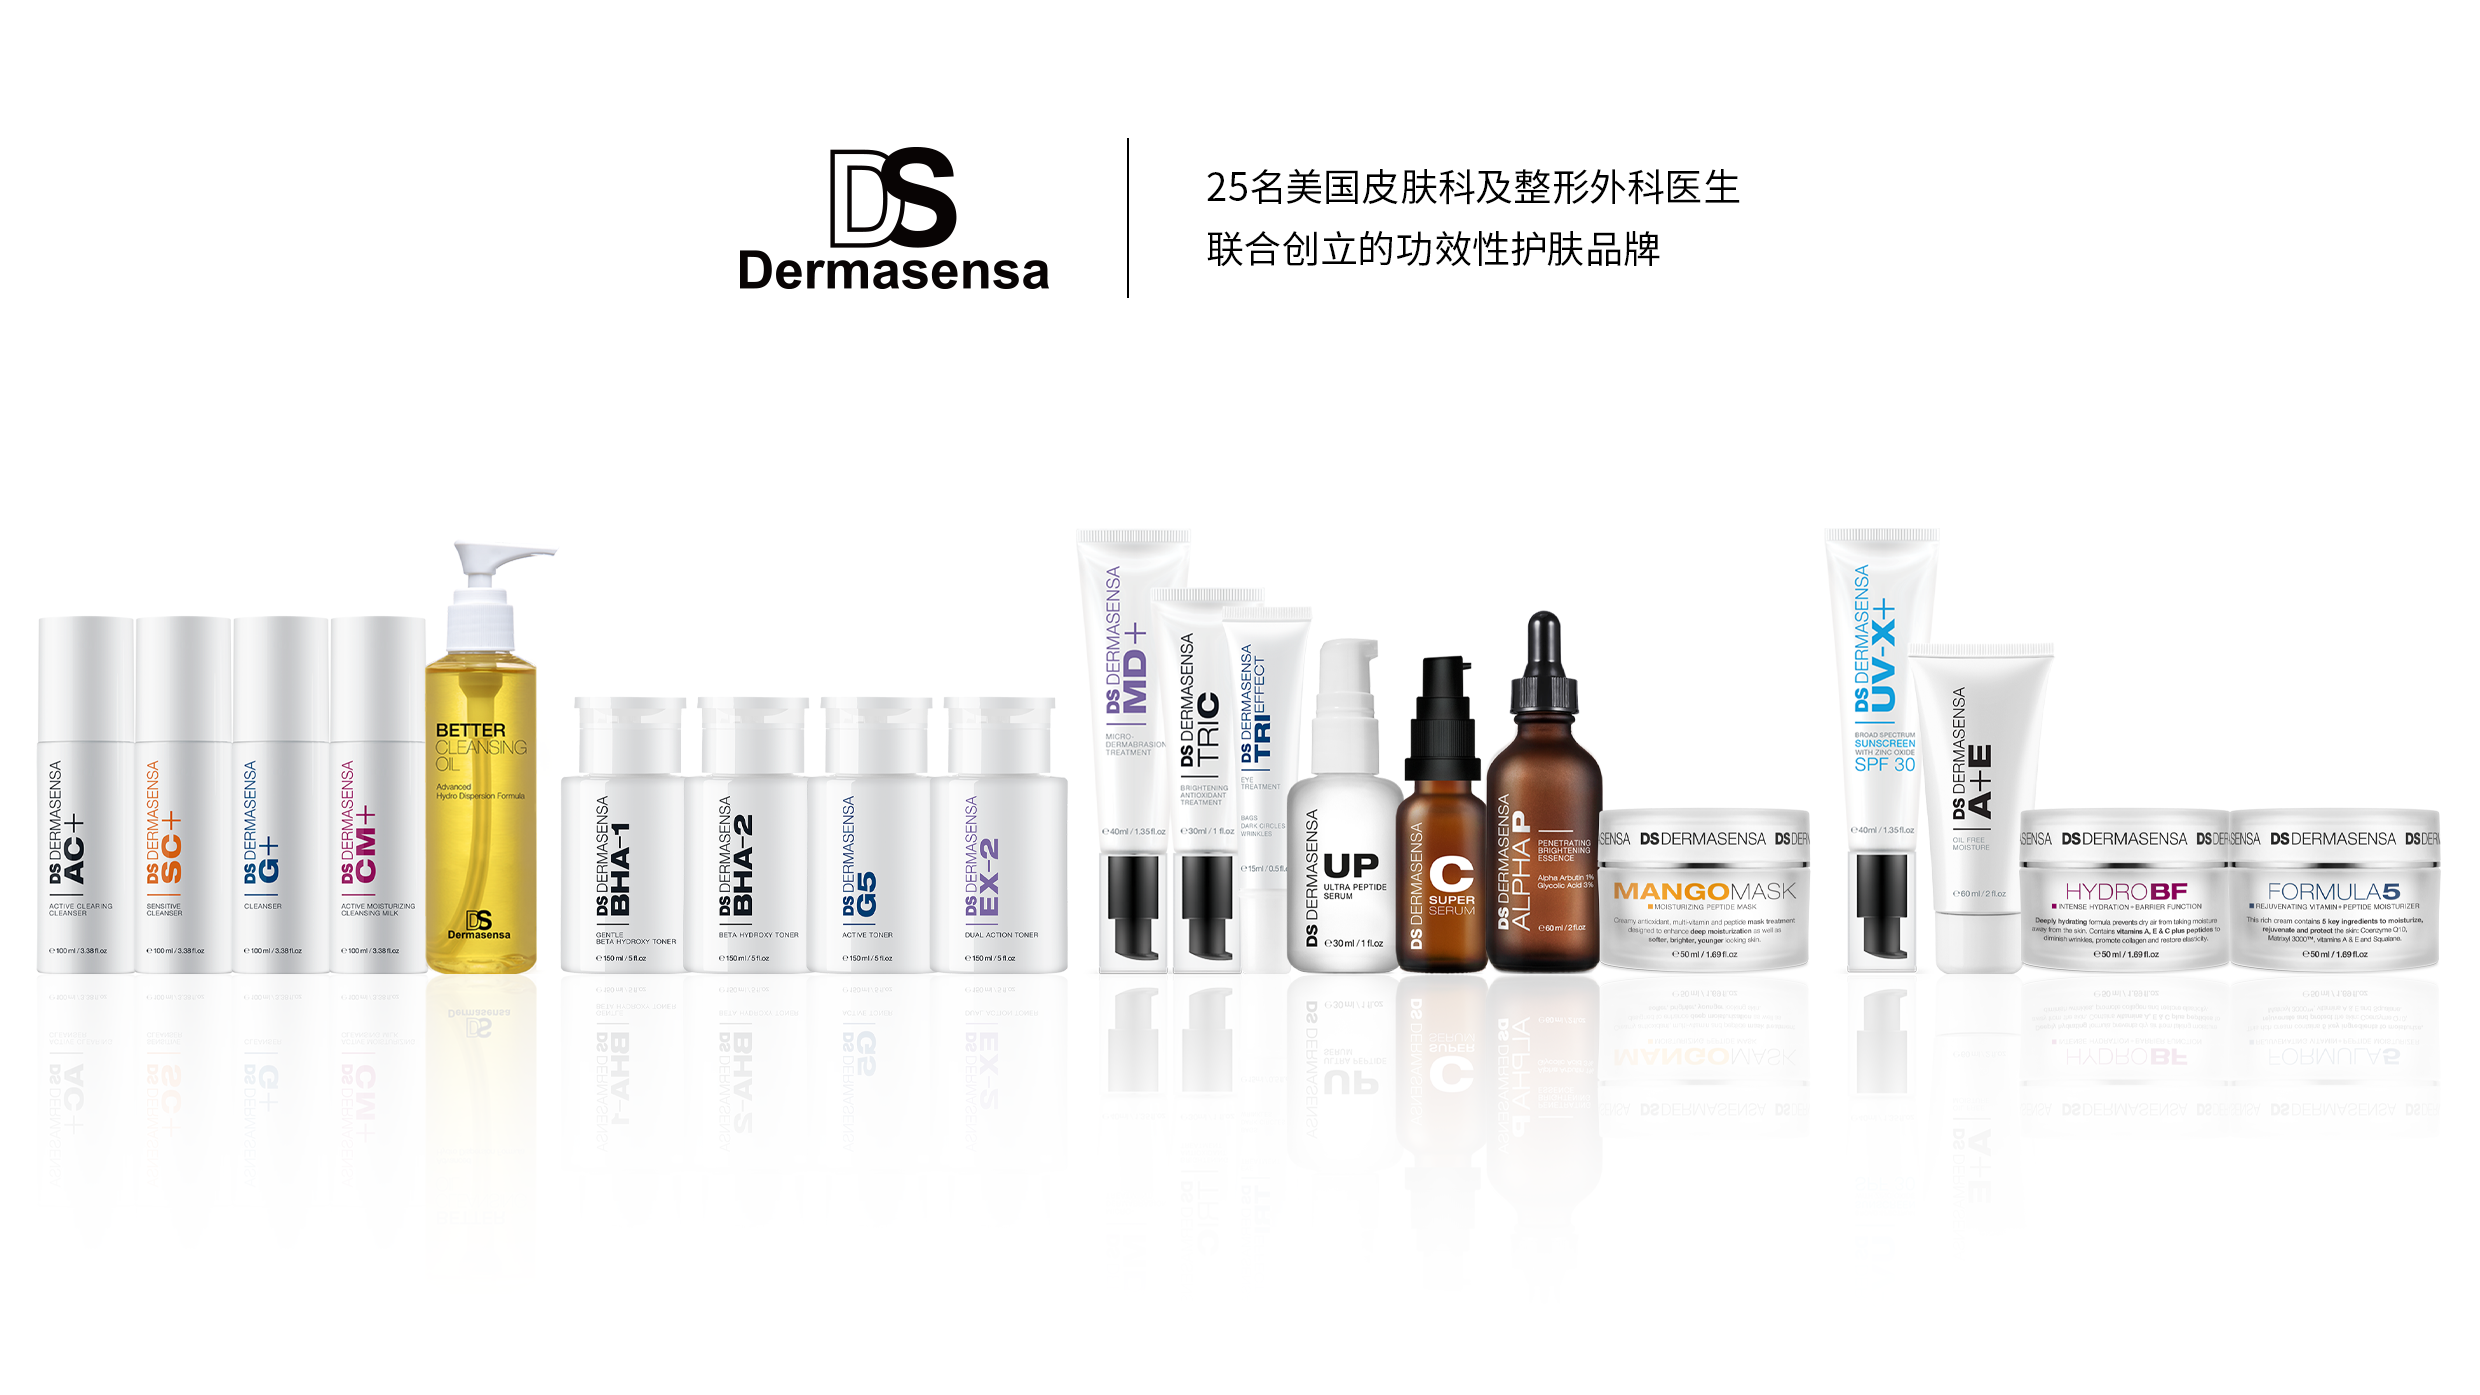 "36氪 debut | functional skin care group ""Claritee's Group"" received tens of millions of seed round financing, brand DS Dermasensa has been launched on Tmall_detailed interpretation_news_hot events_36氪"